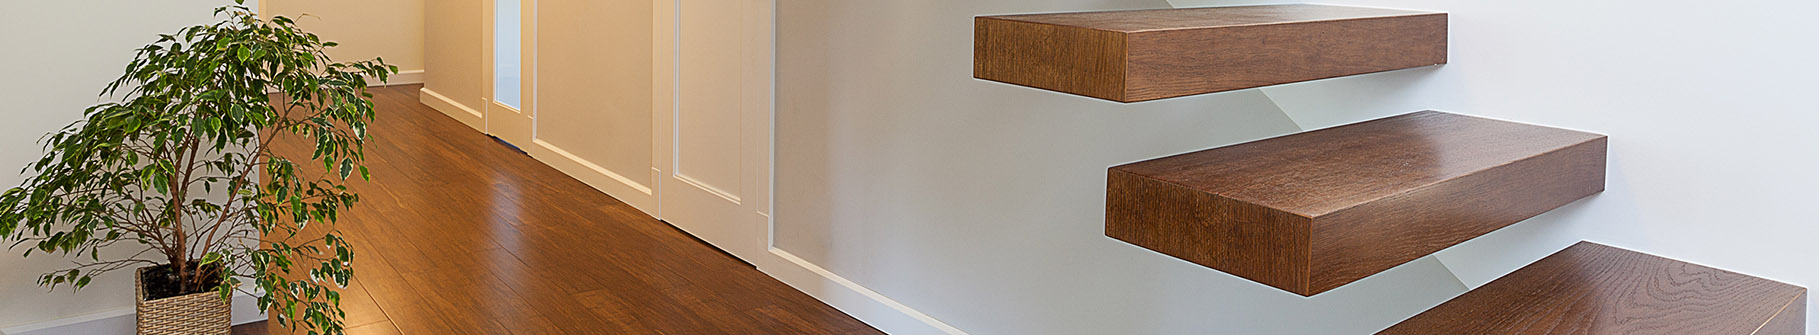 ... It Does Require Diligence Over The Years And A Little Attention To  Detail. Just Like Hardwood Floors, Hardwood Stairs Are Prone To Scratching,  ...